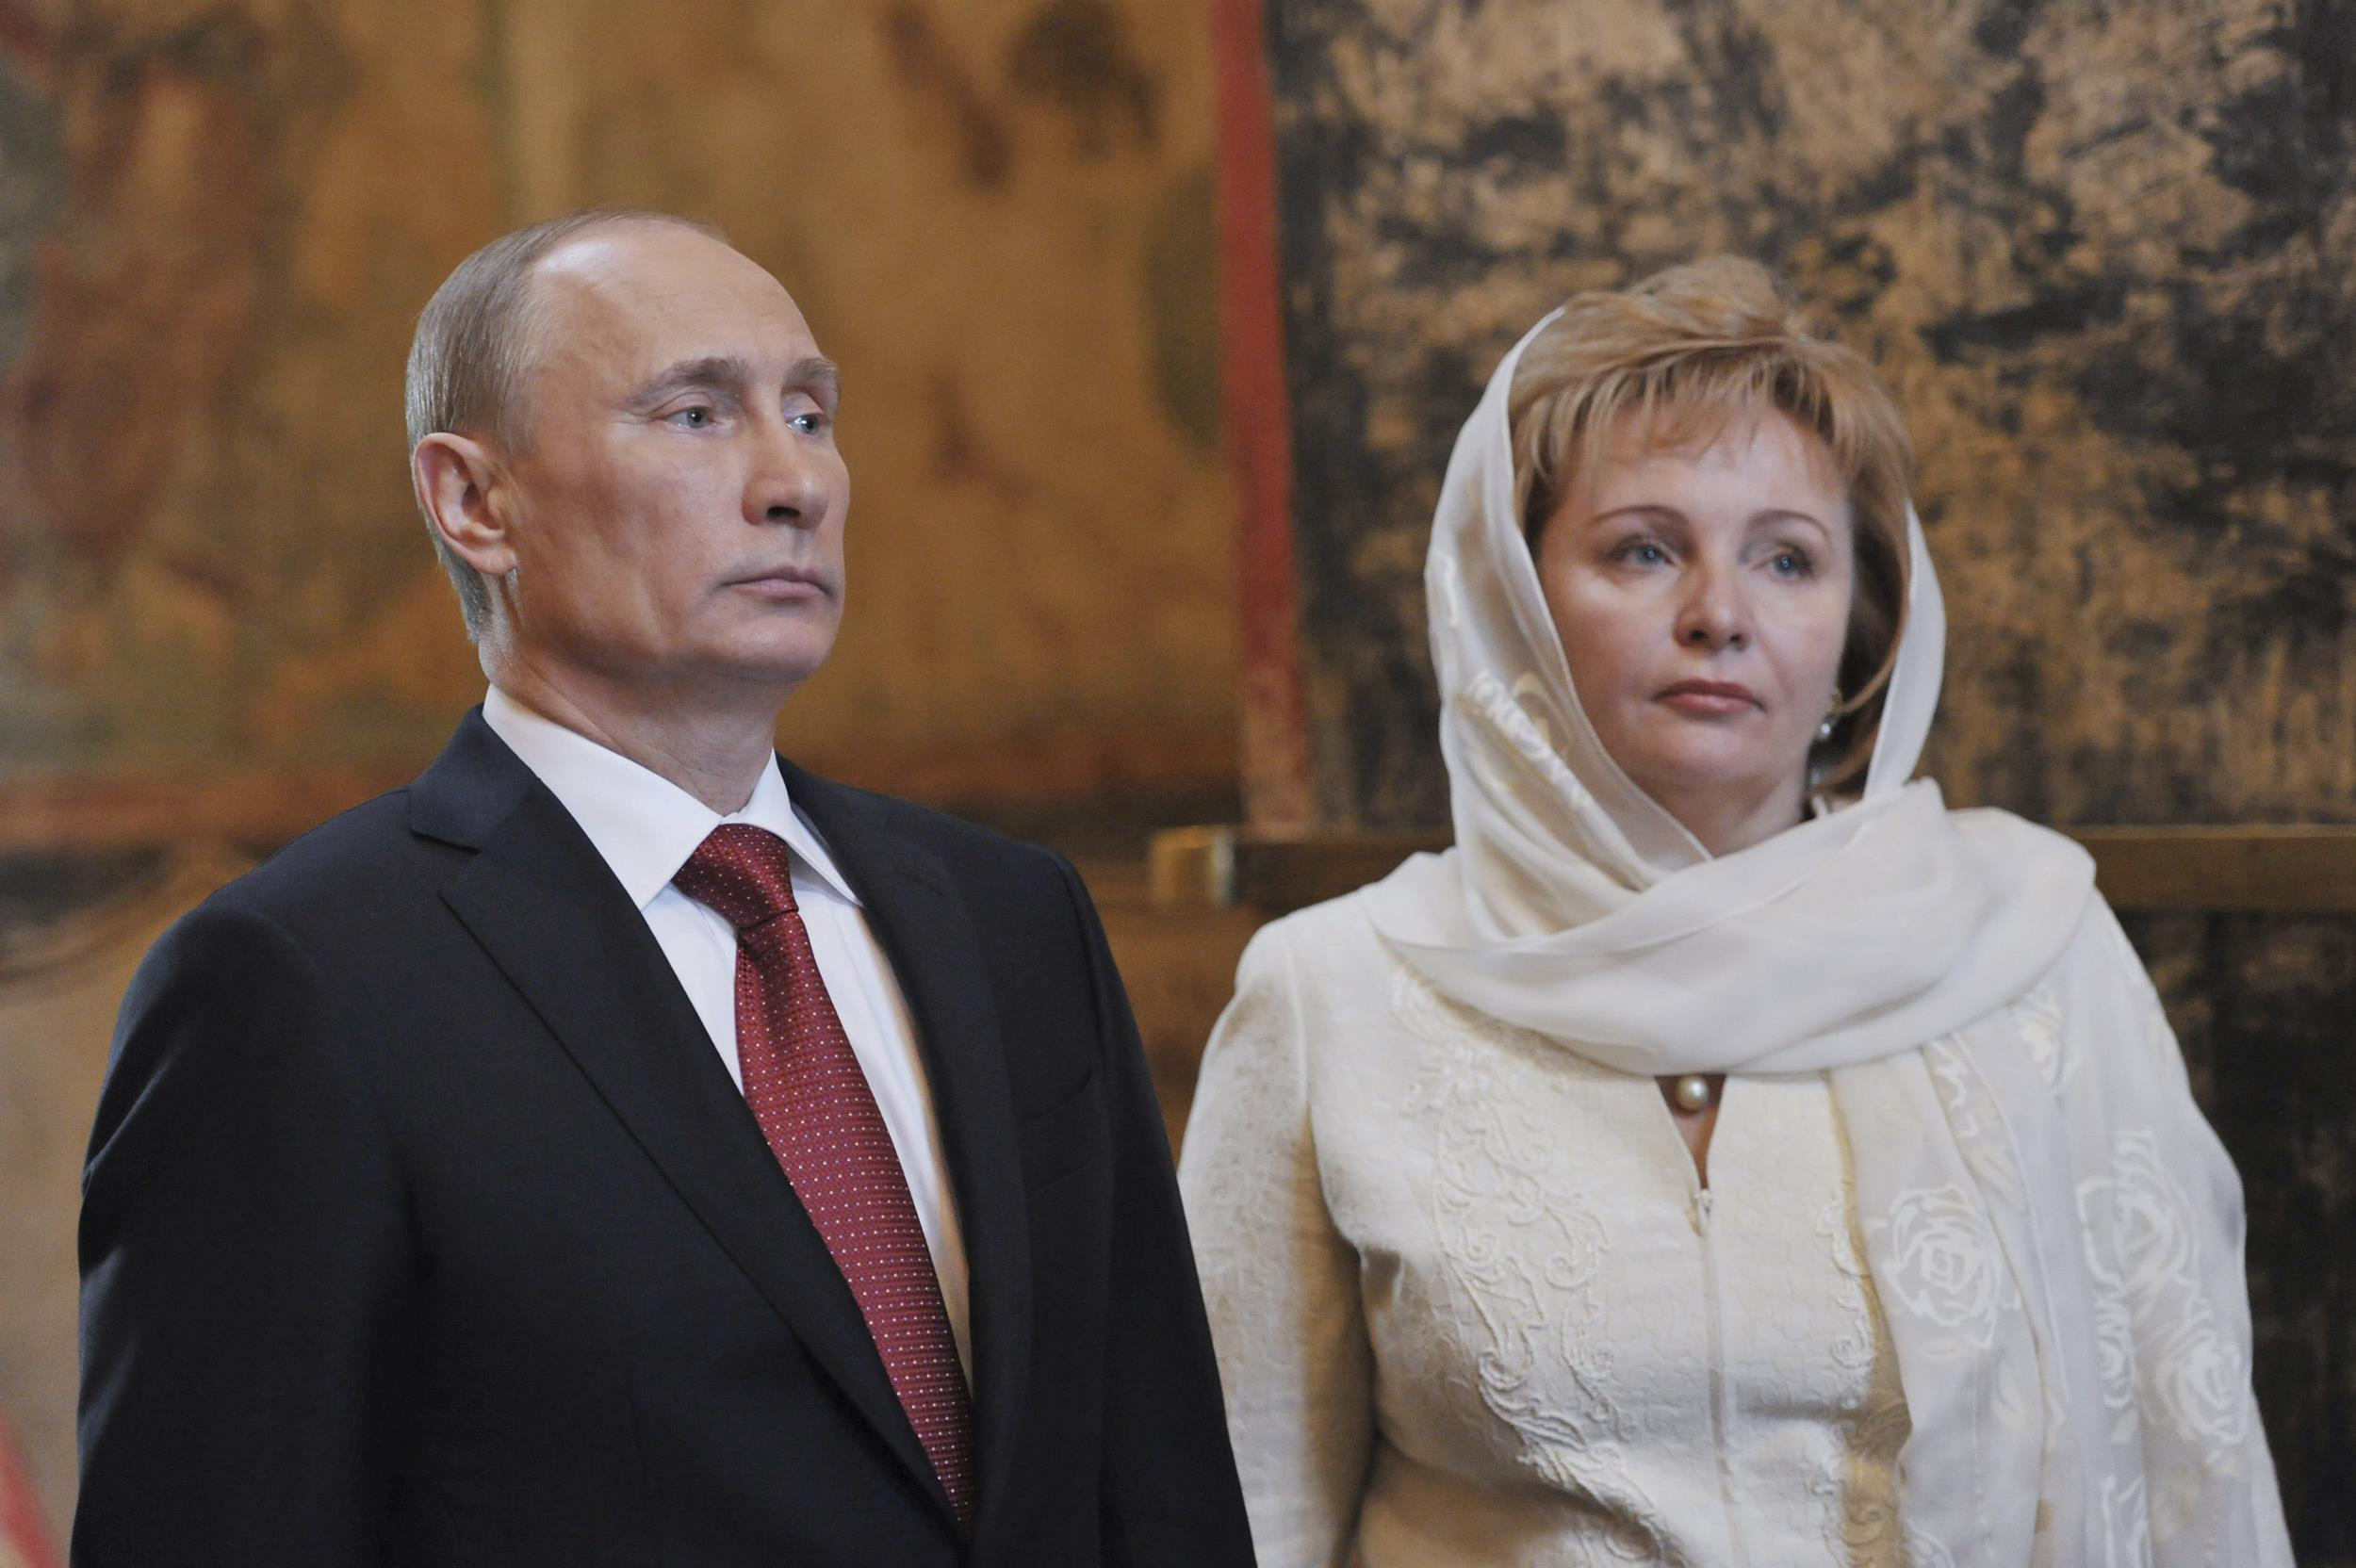 Image: File photo of Putin and his wife attending a service in Moscow